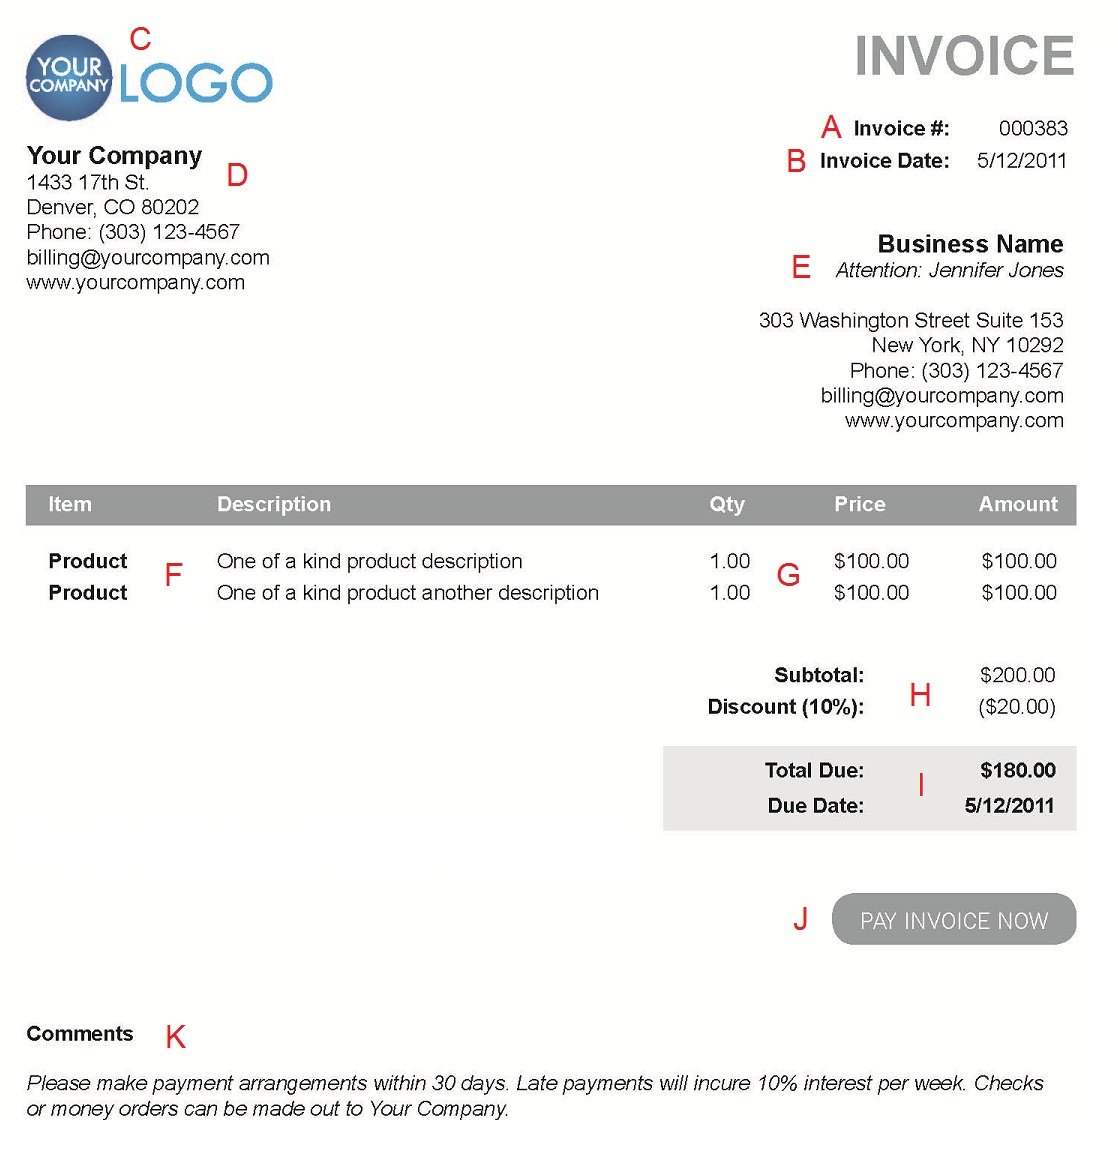 Shopdesignsus  Pleasant The  Different Sections Of An Electronic Payment Invoice With Engaging A  With Endearing Windows Invoice Template Also Free Templates For Invoices Printable In Addition Invoice Template Ai And Free Contractor Invoice Forms As Well As Manufacturer Invoice Price For Cars Additionally Word Templates For Invoices From Paysimplecom With Shopdesignsus  Engaging The  Different Sections Of An Electronic Payment Invoice With Endearing A  And Pleasant Windows Invoice Template Also Free Templates For Invoices Printable In Addition Invoice Template Ai From Paysimplecom